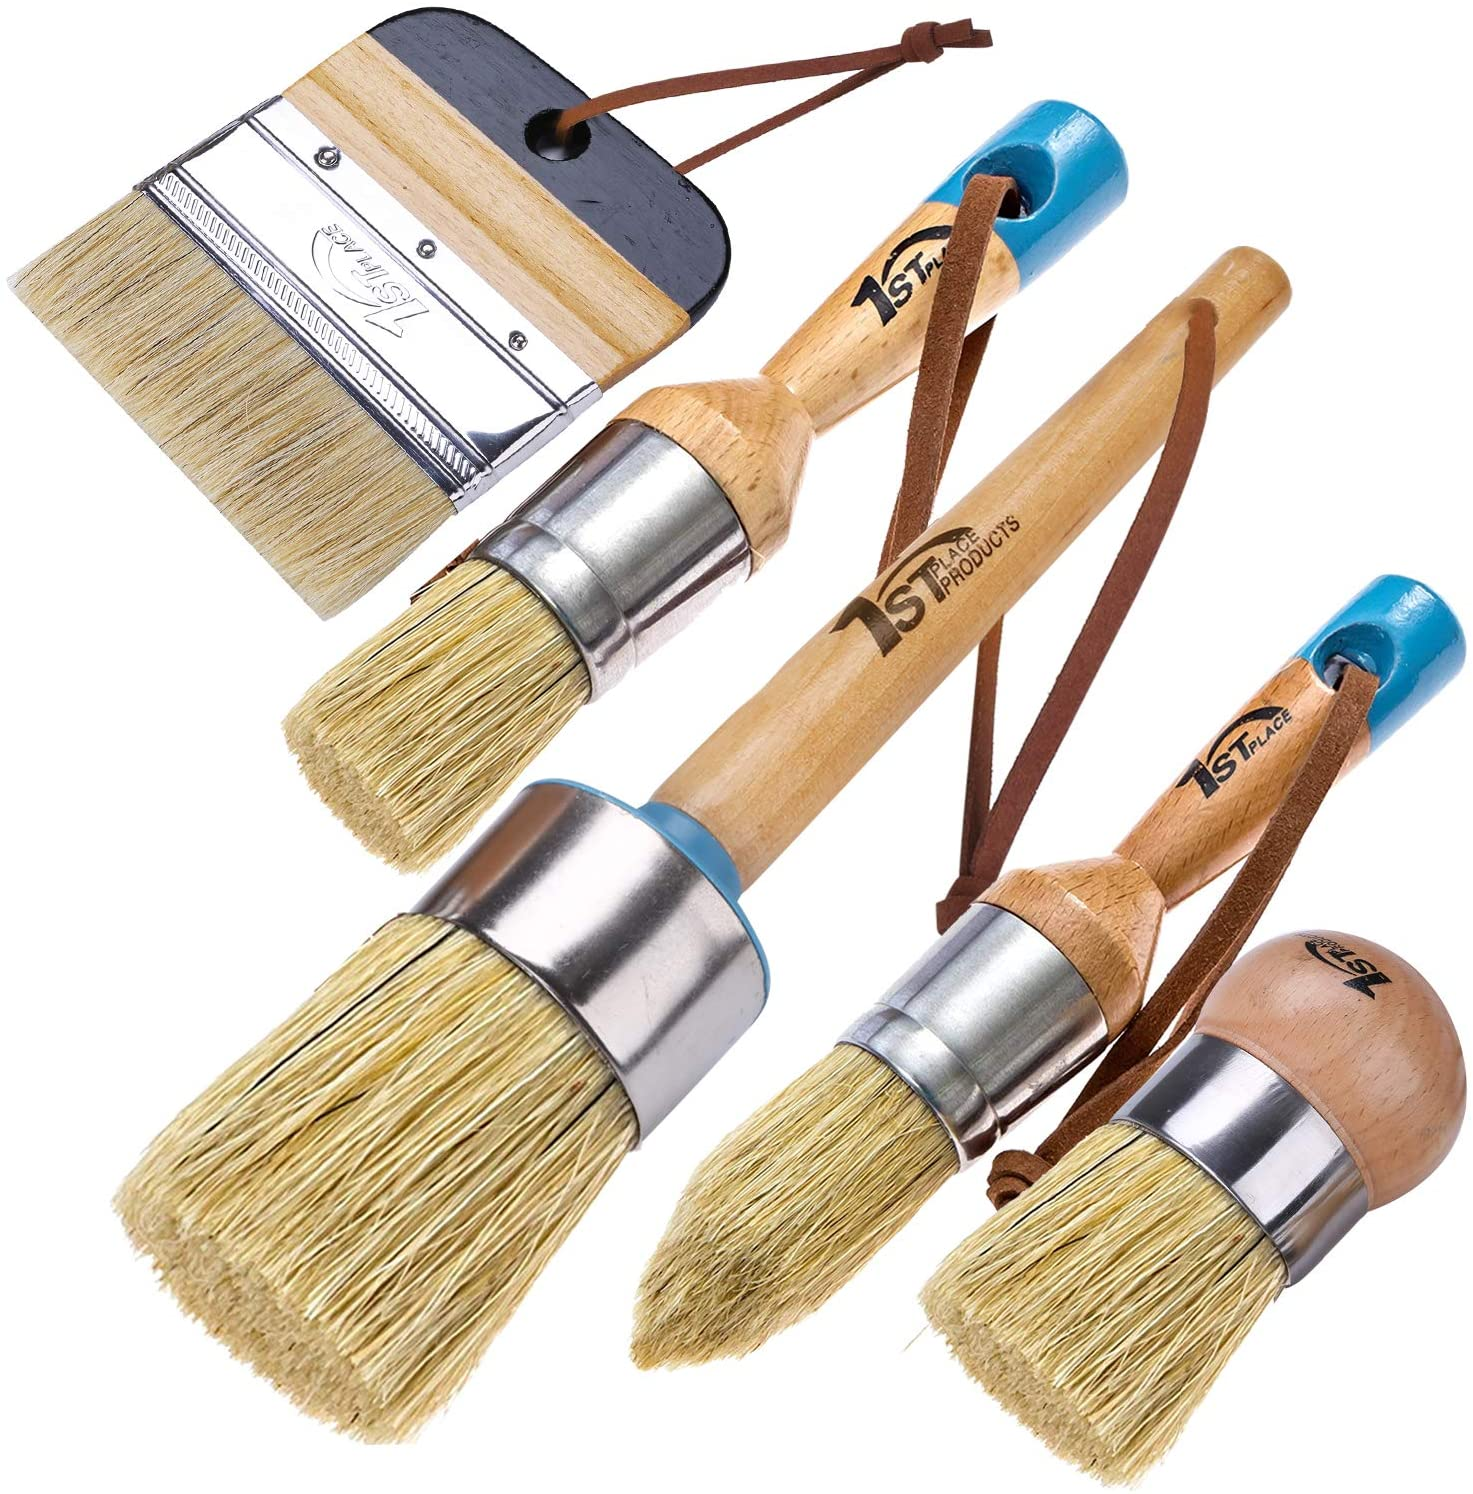 1st Place Products Chalk & Wax 5 Piece Brush Set - Pure Natural Bristles - Excellent for Painting, Waxing, DIY, Home Decor